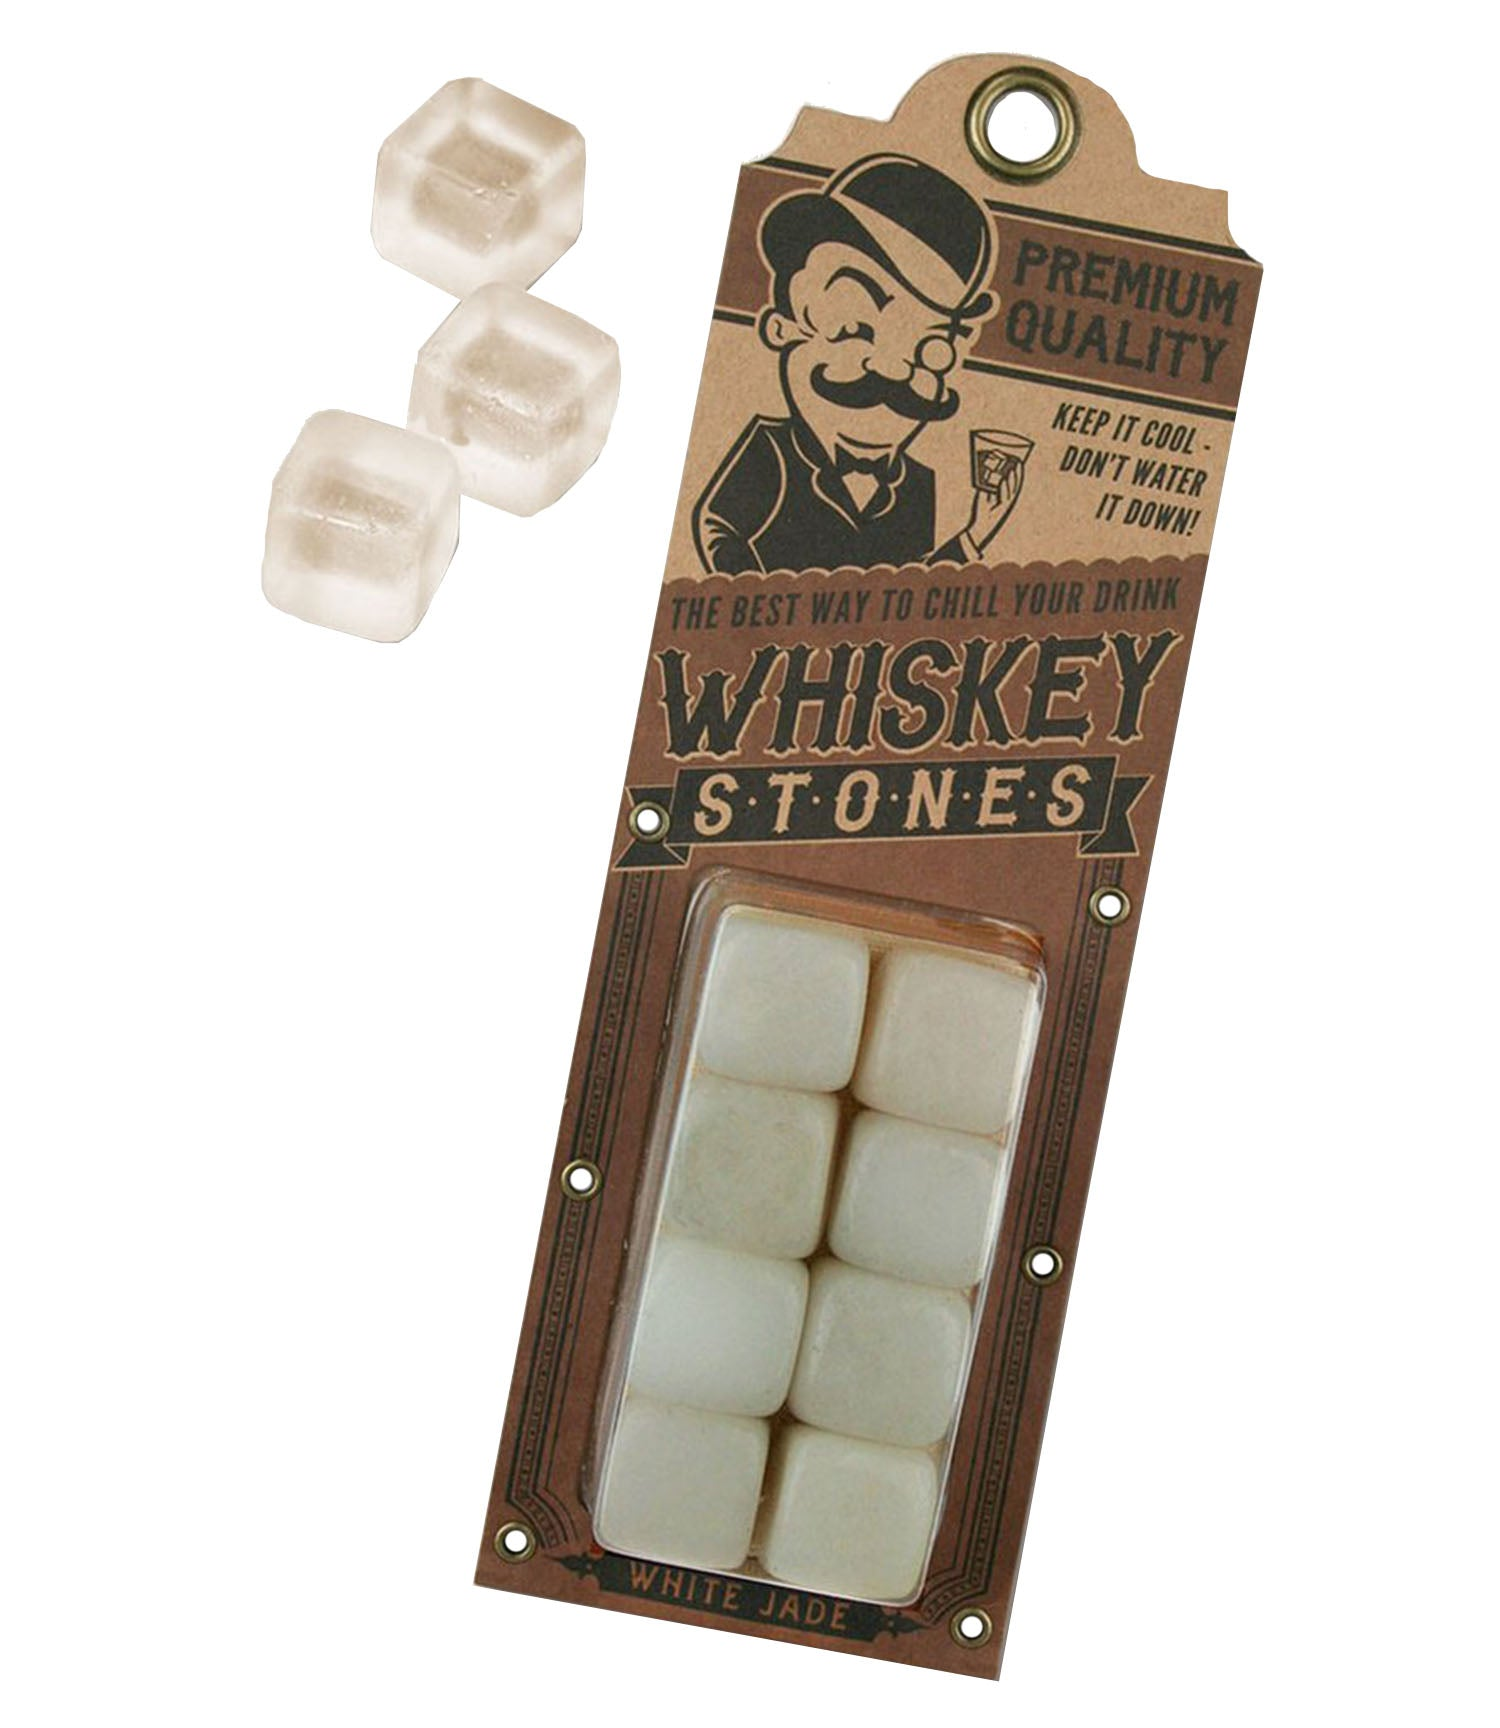 The WHITE JADE STONES Whiskey Stones Set